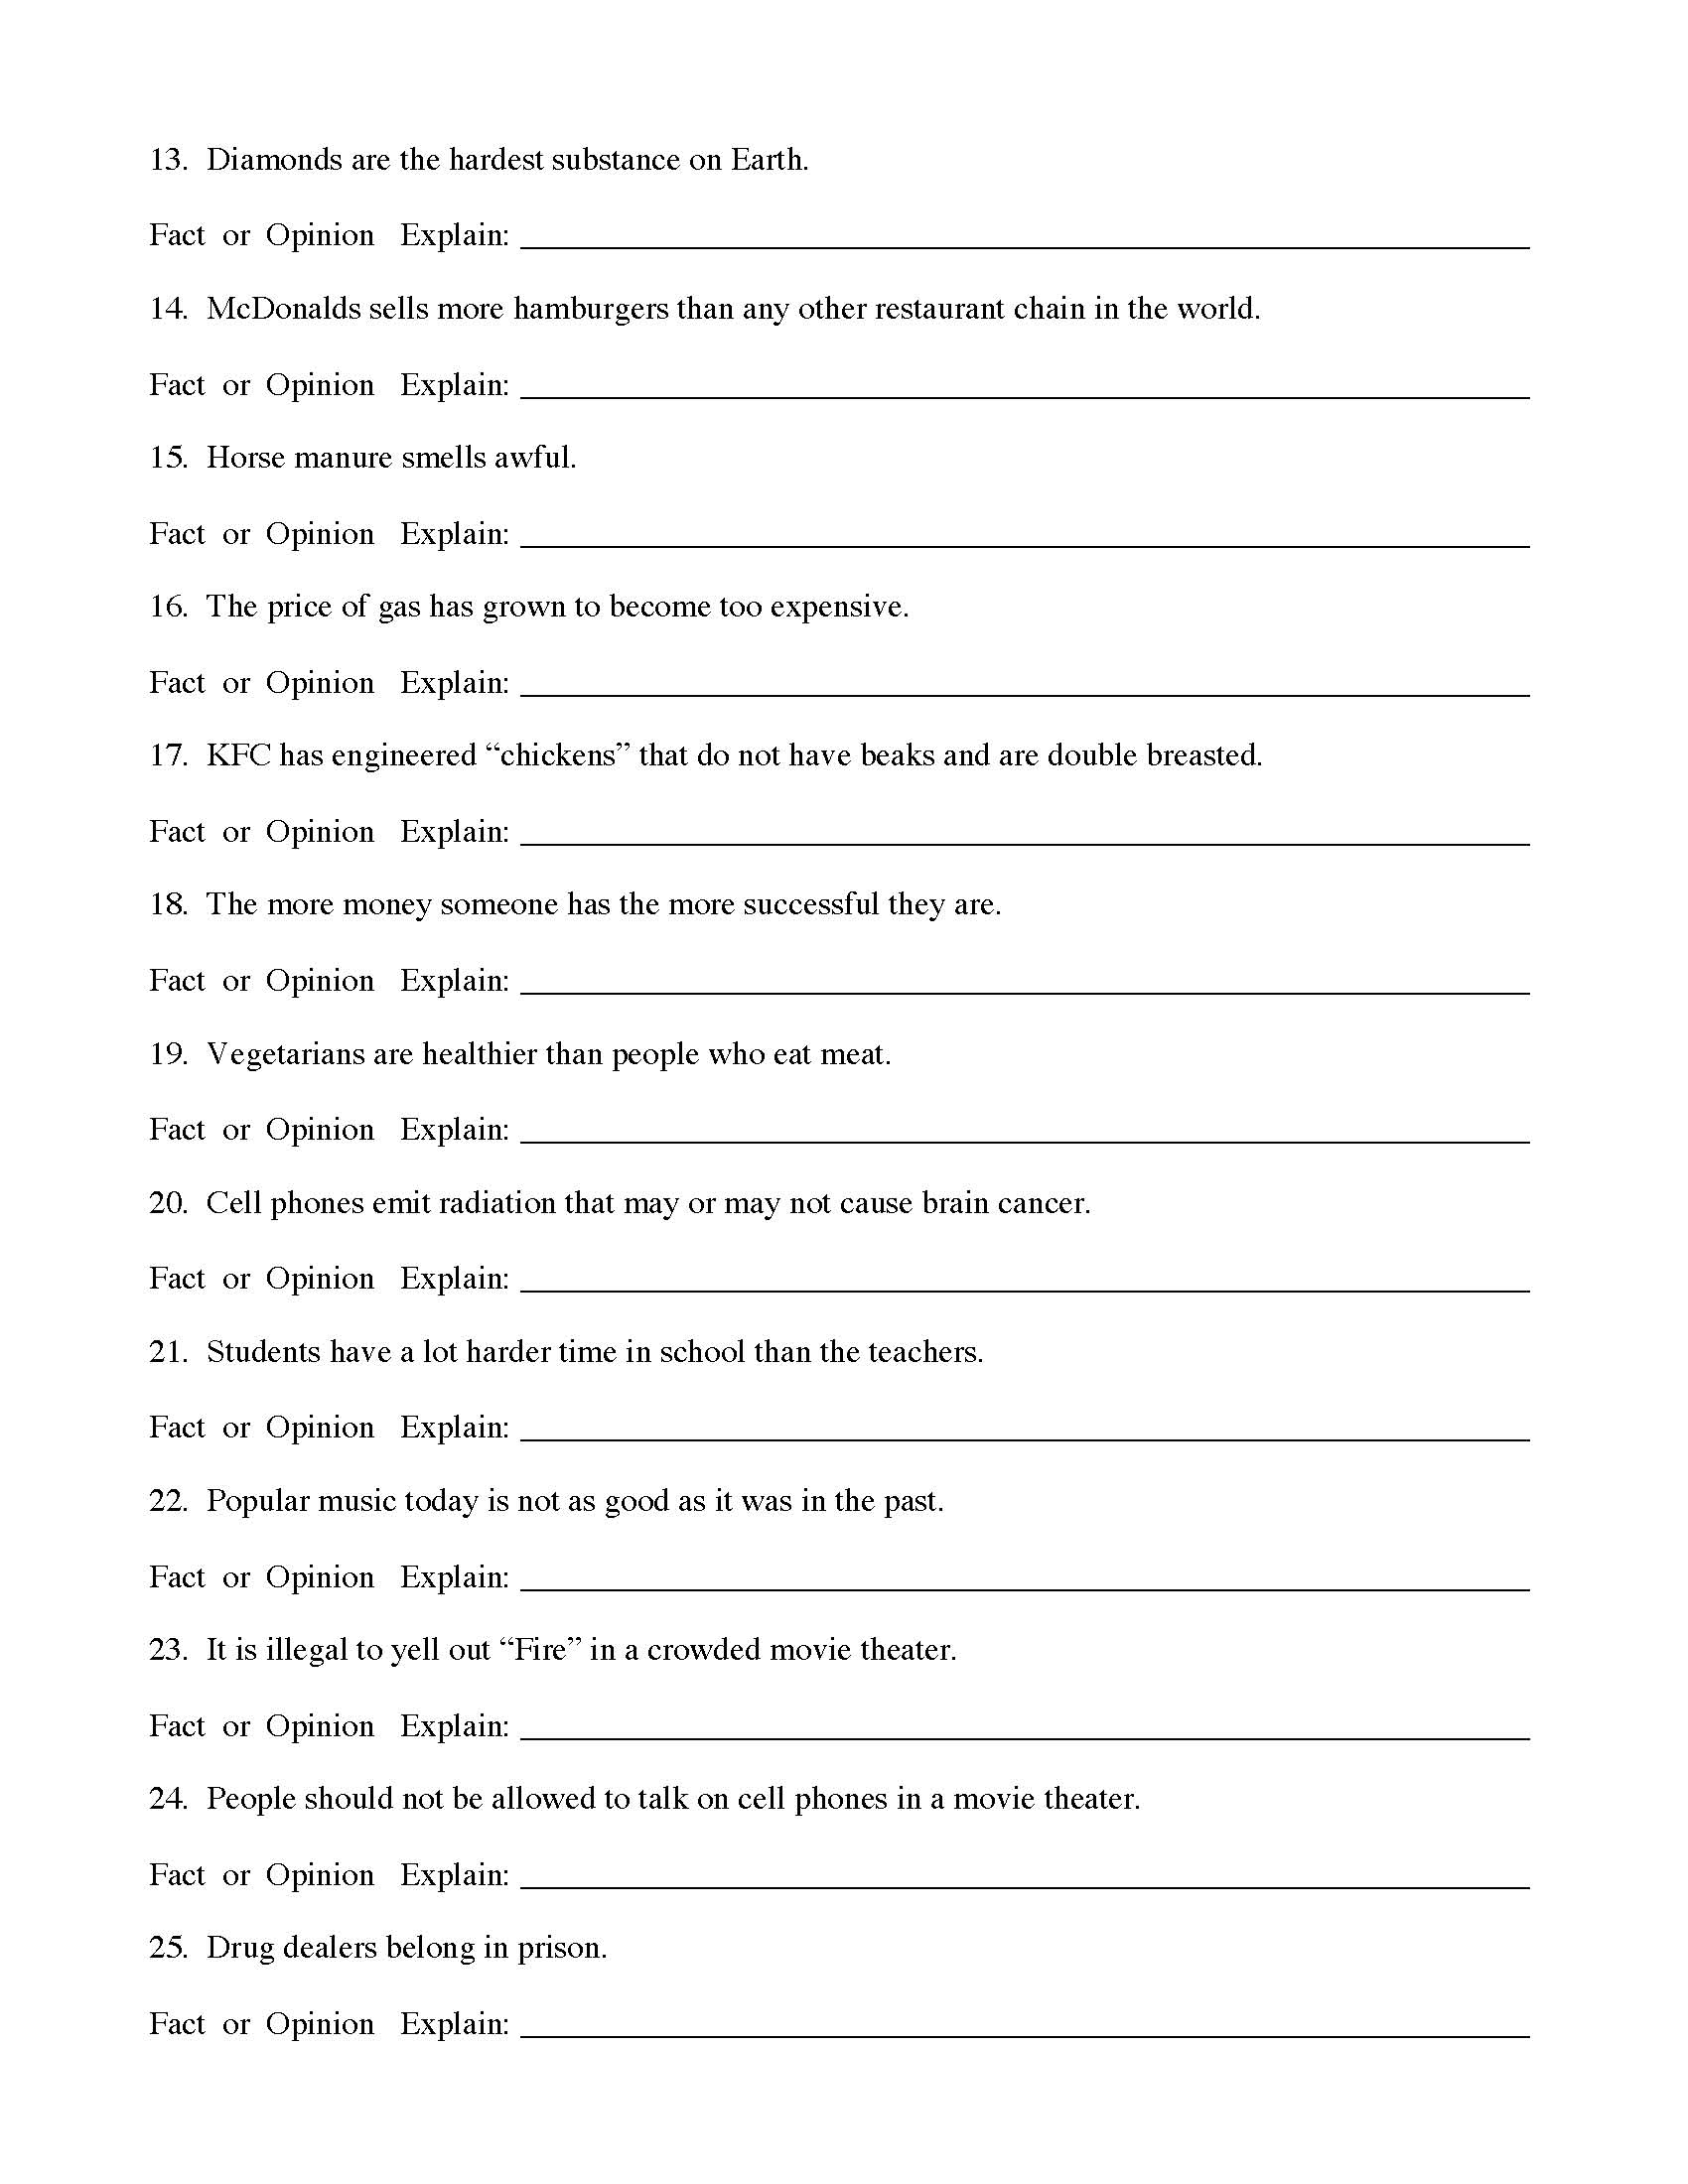 Fact And Opinion Worksheet 1 Preview